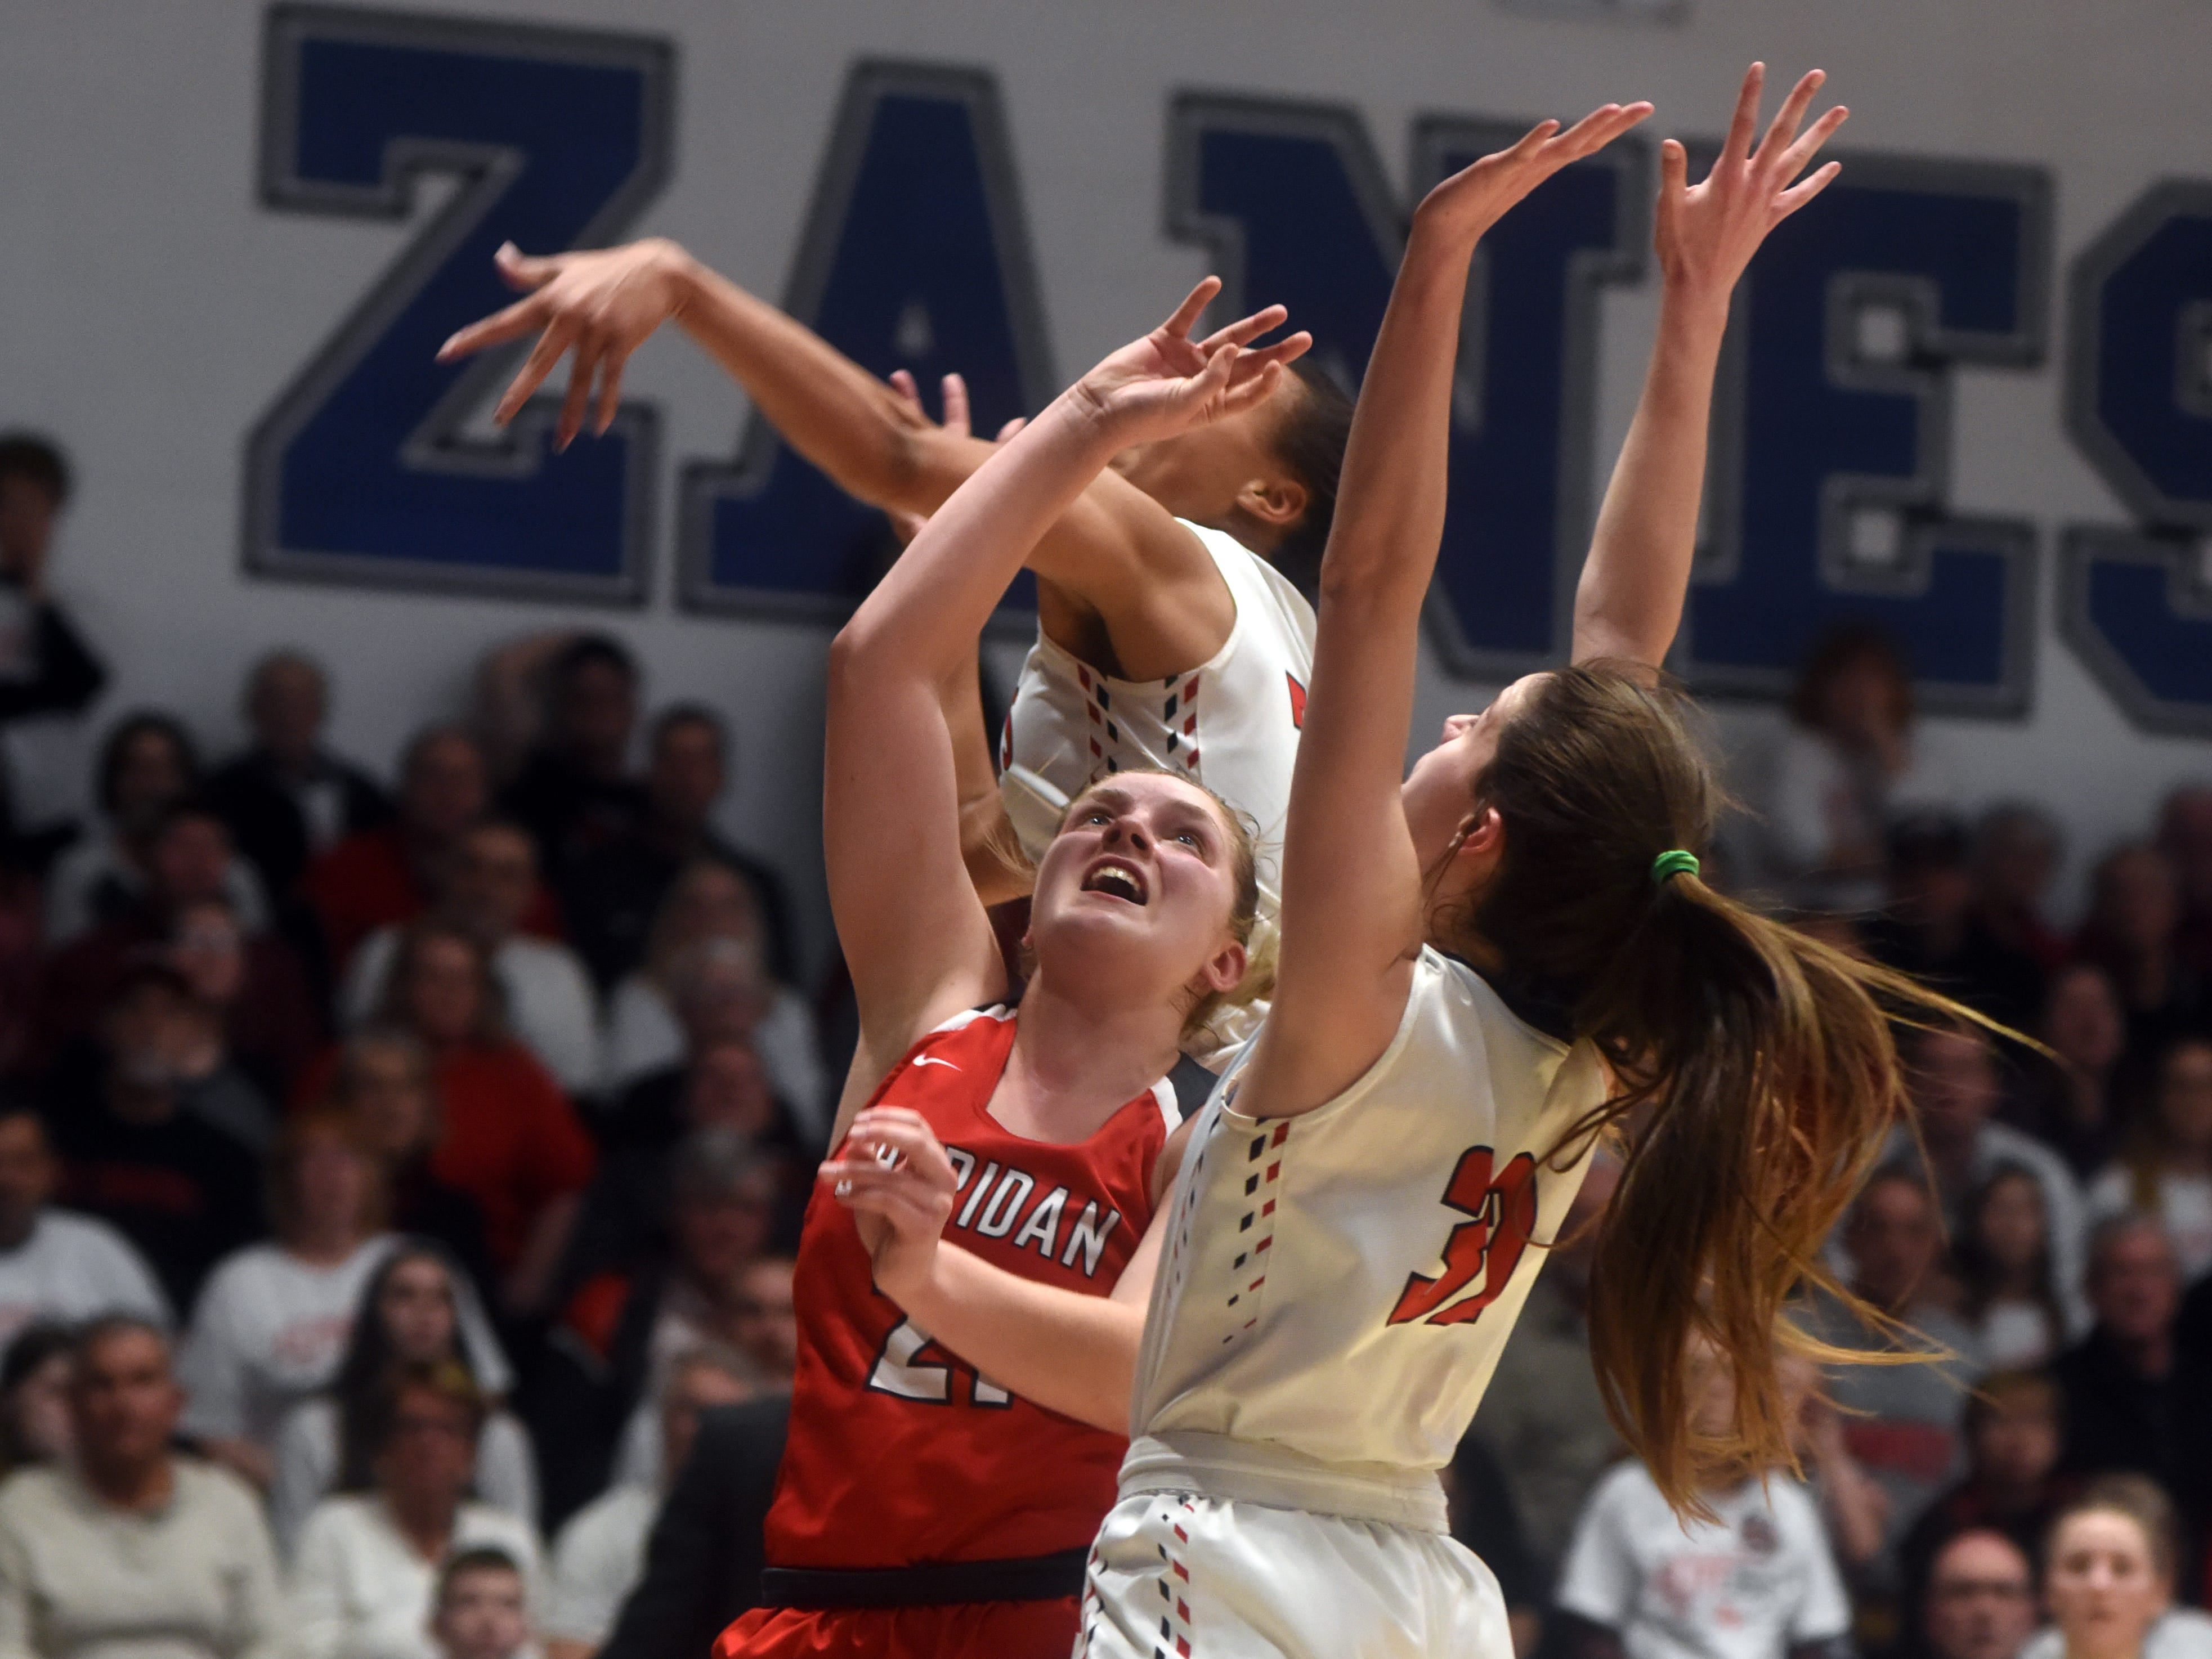 Sheridan reached its first state tournament since 2004 with a 48-46 win against New Philadelphia on Friday night at Winland Memorial Gymnasium.